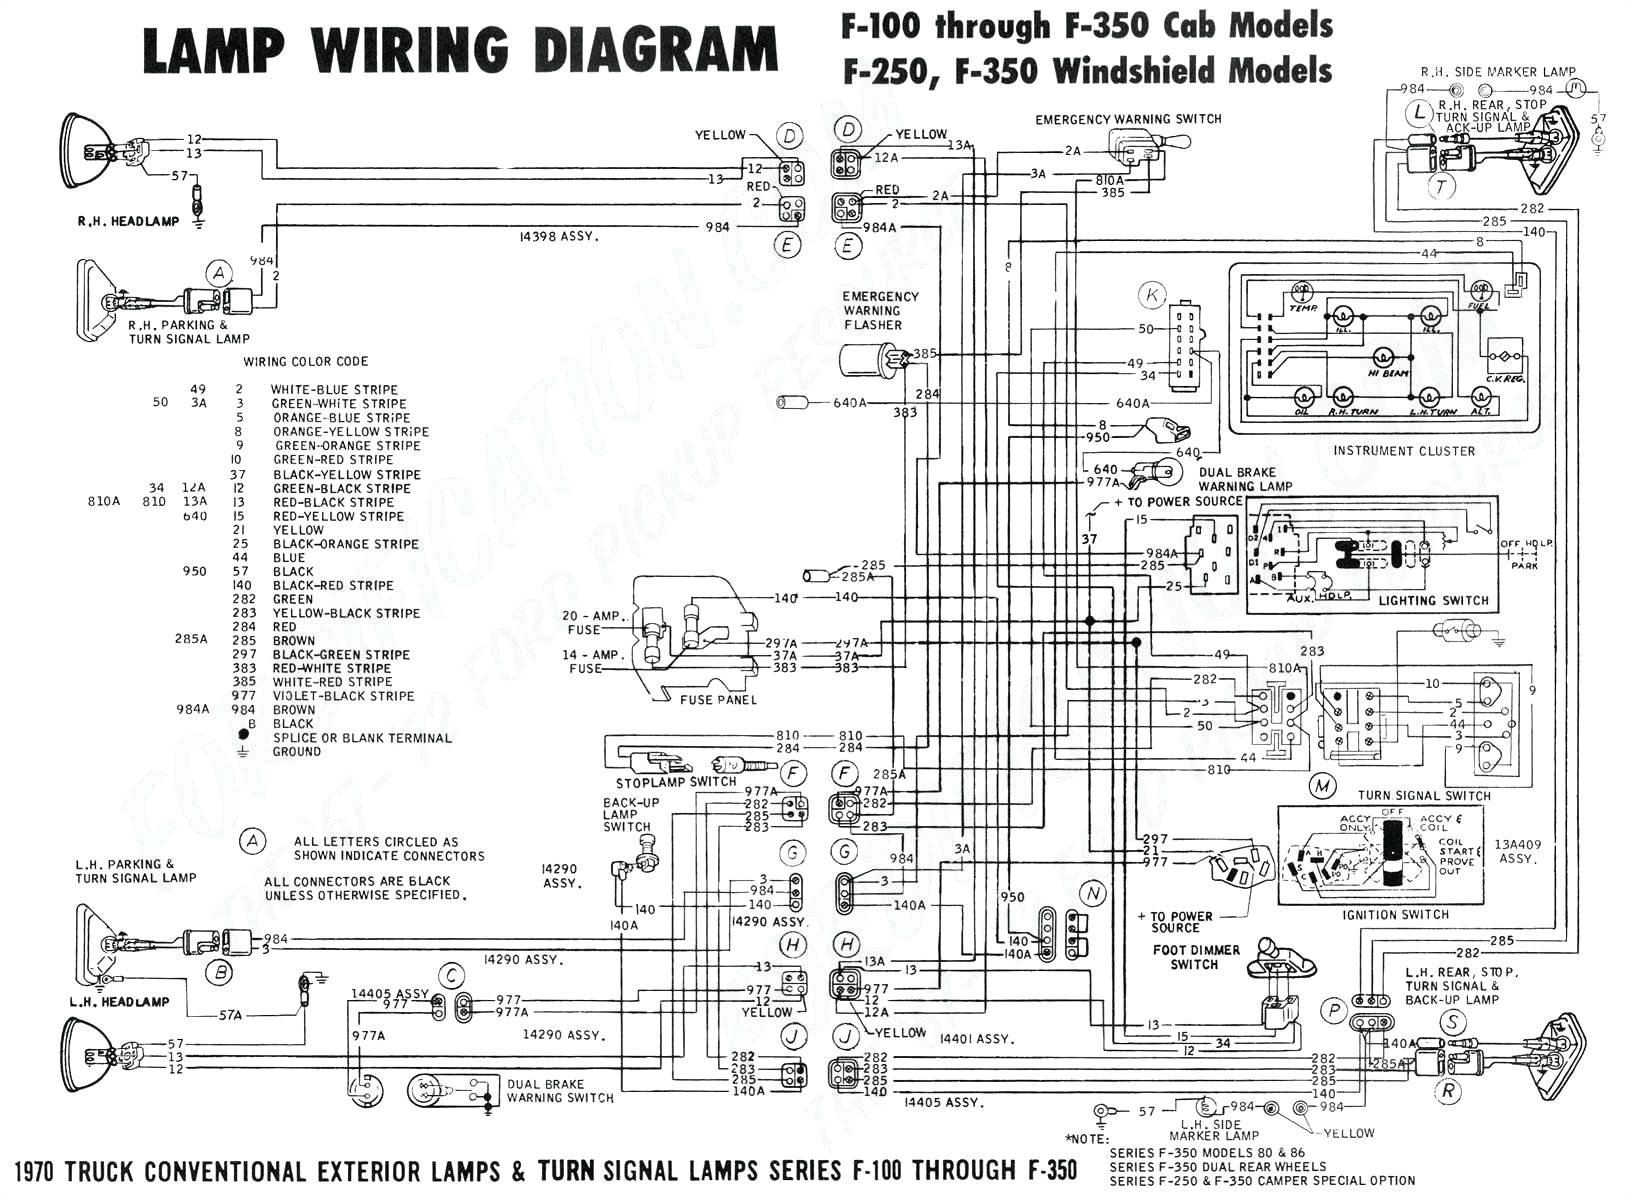 96 Dodge Ram 1500 Fog Light Switch Wiring Diagram from autocardesign.org